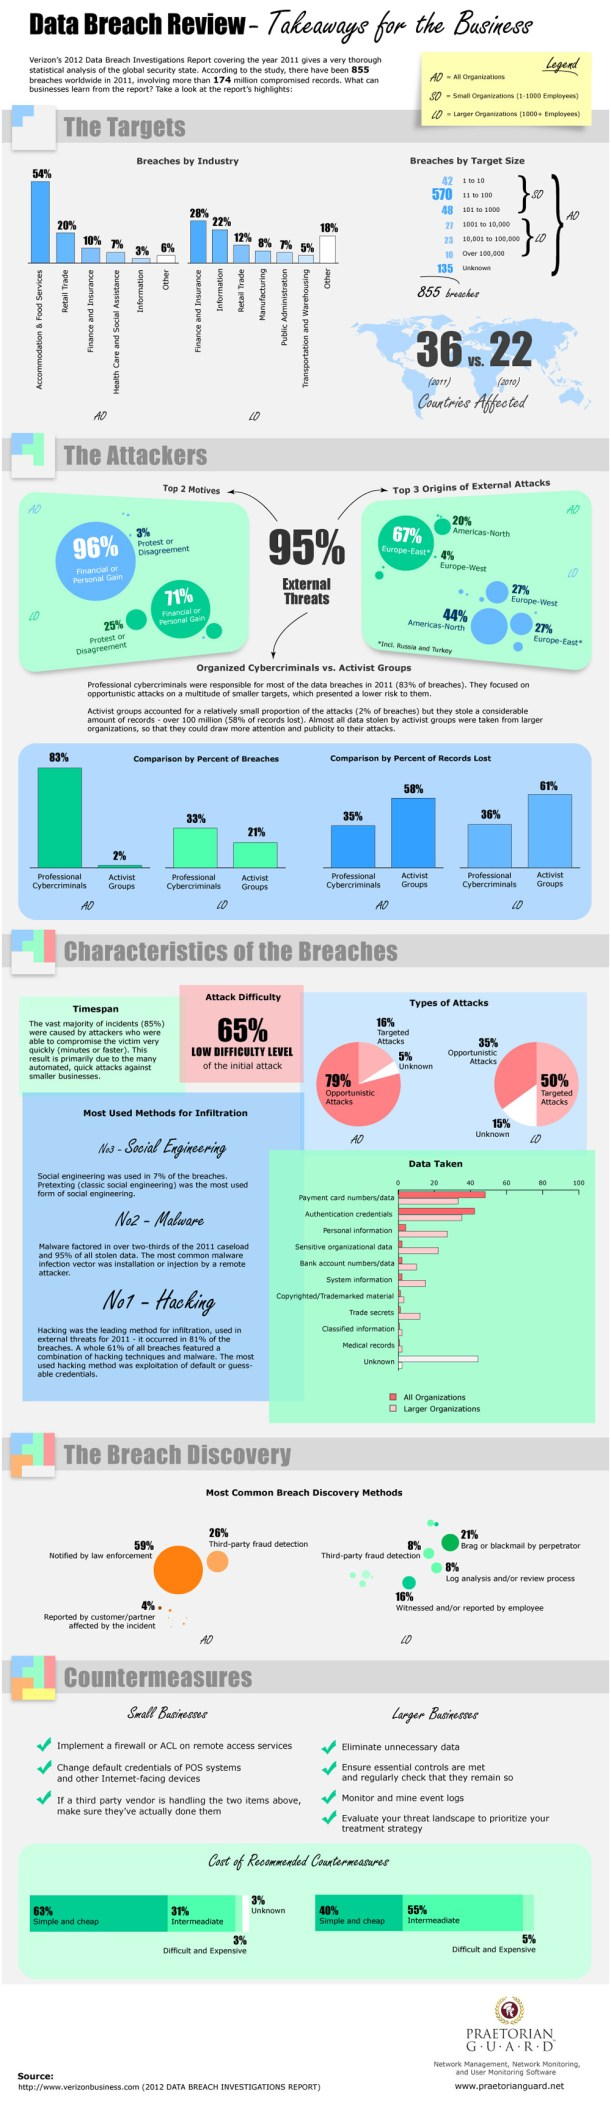 data-breach-review--takeaways-for-the-business_50f41c777628c